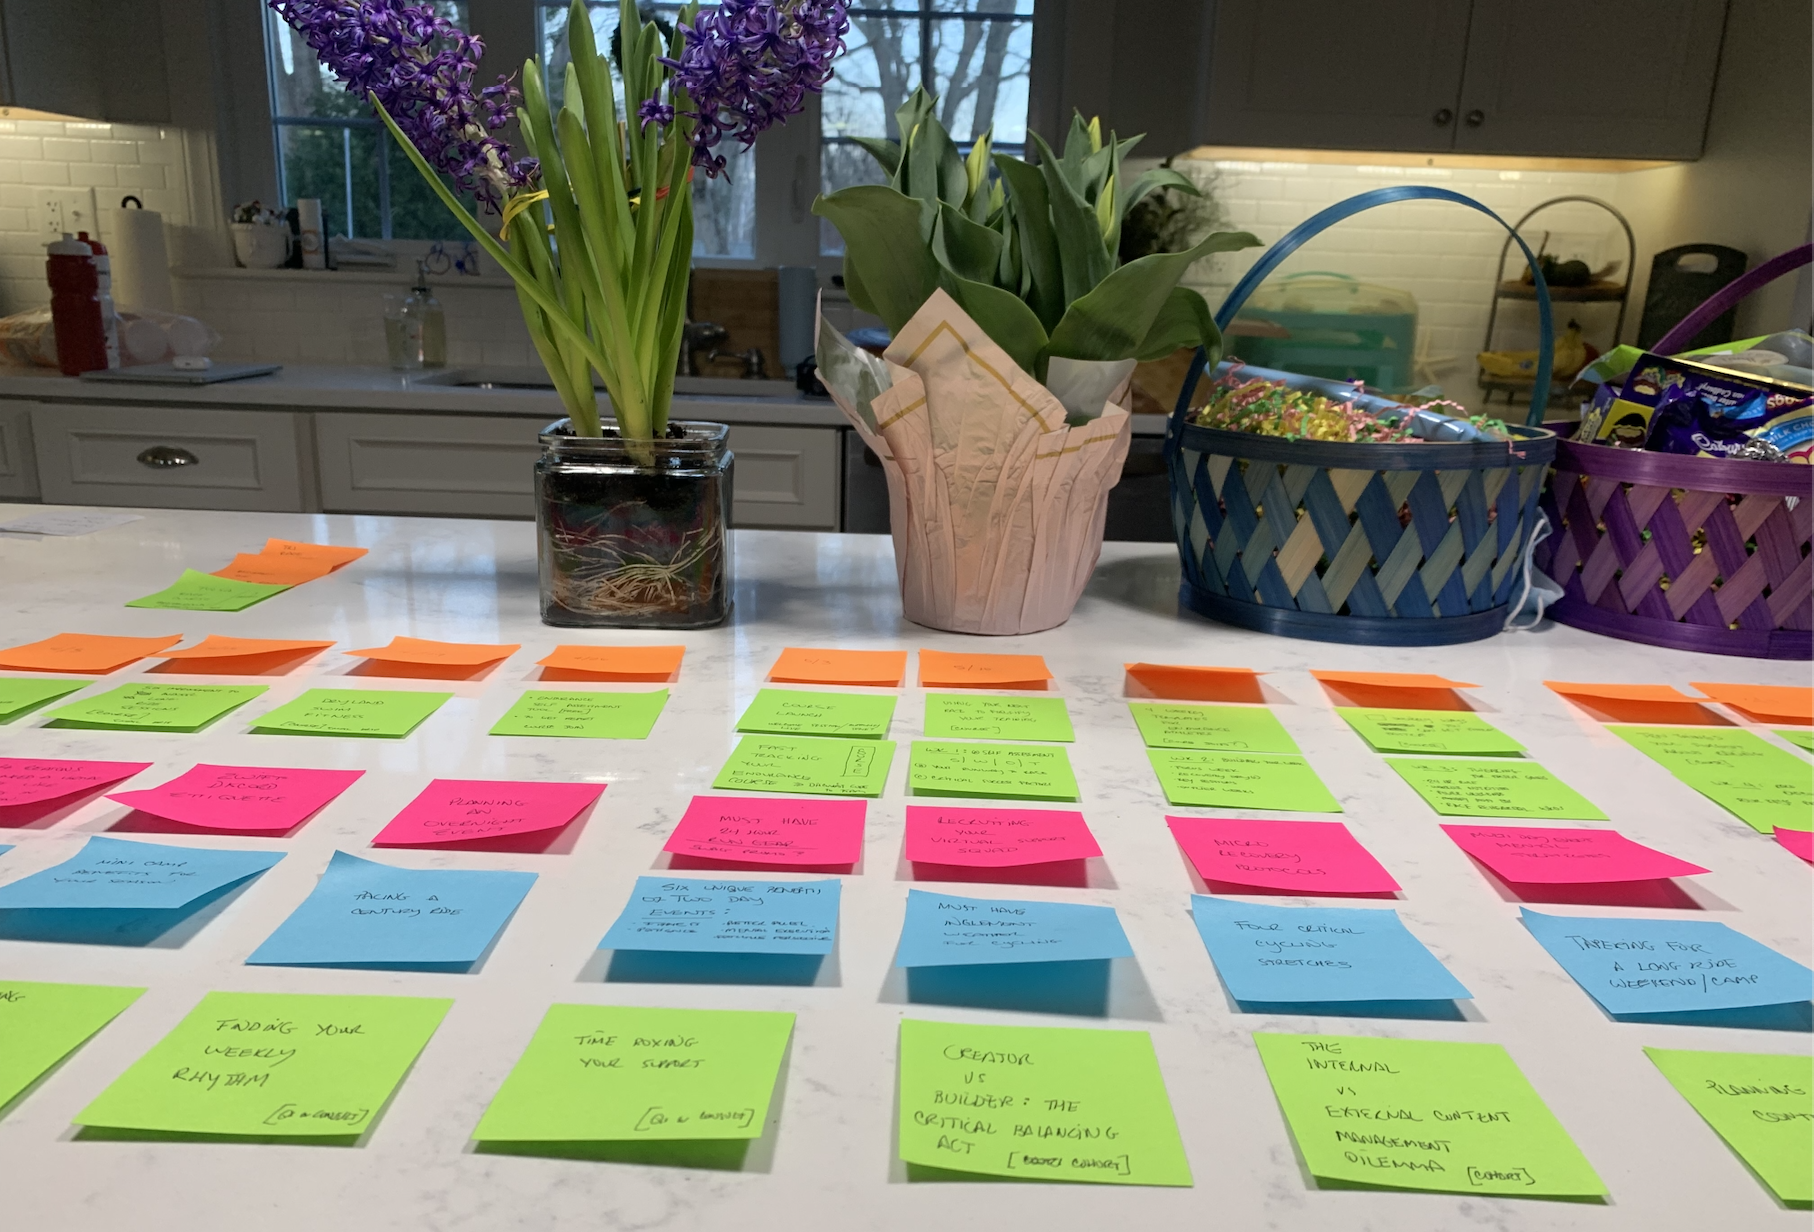 Post It Organizer Image on Kitchen Counter (With Easter stuff in the background).